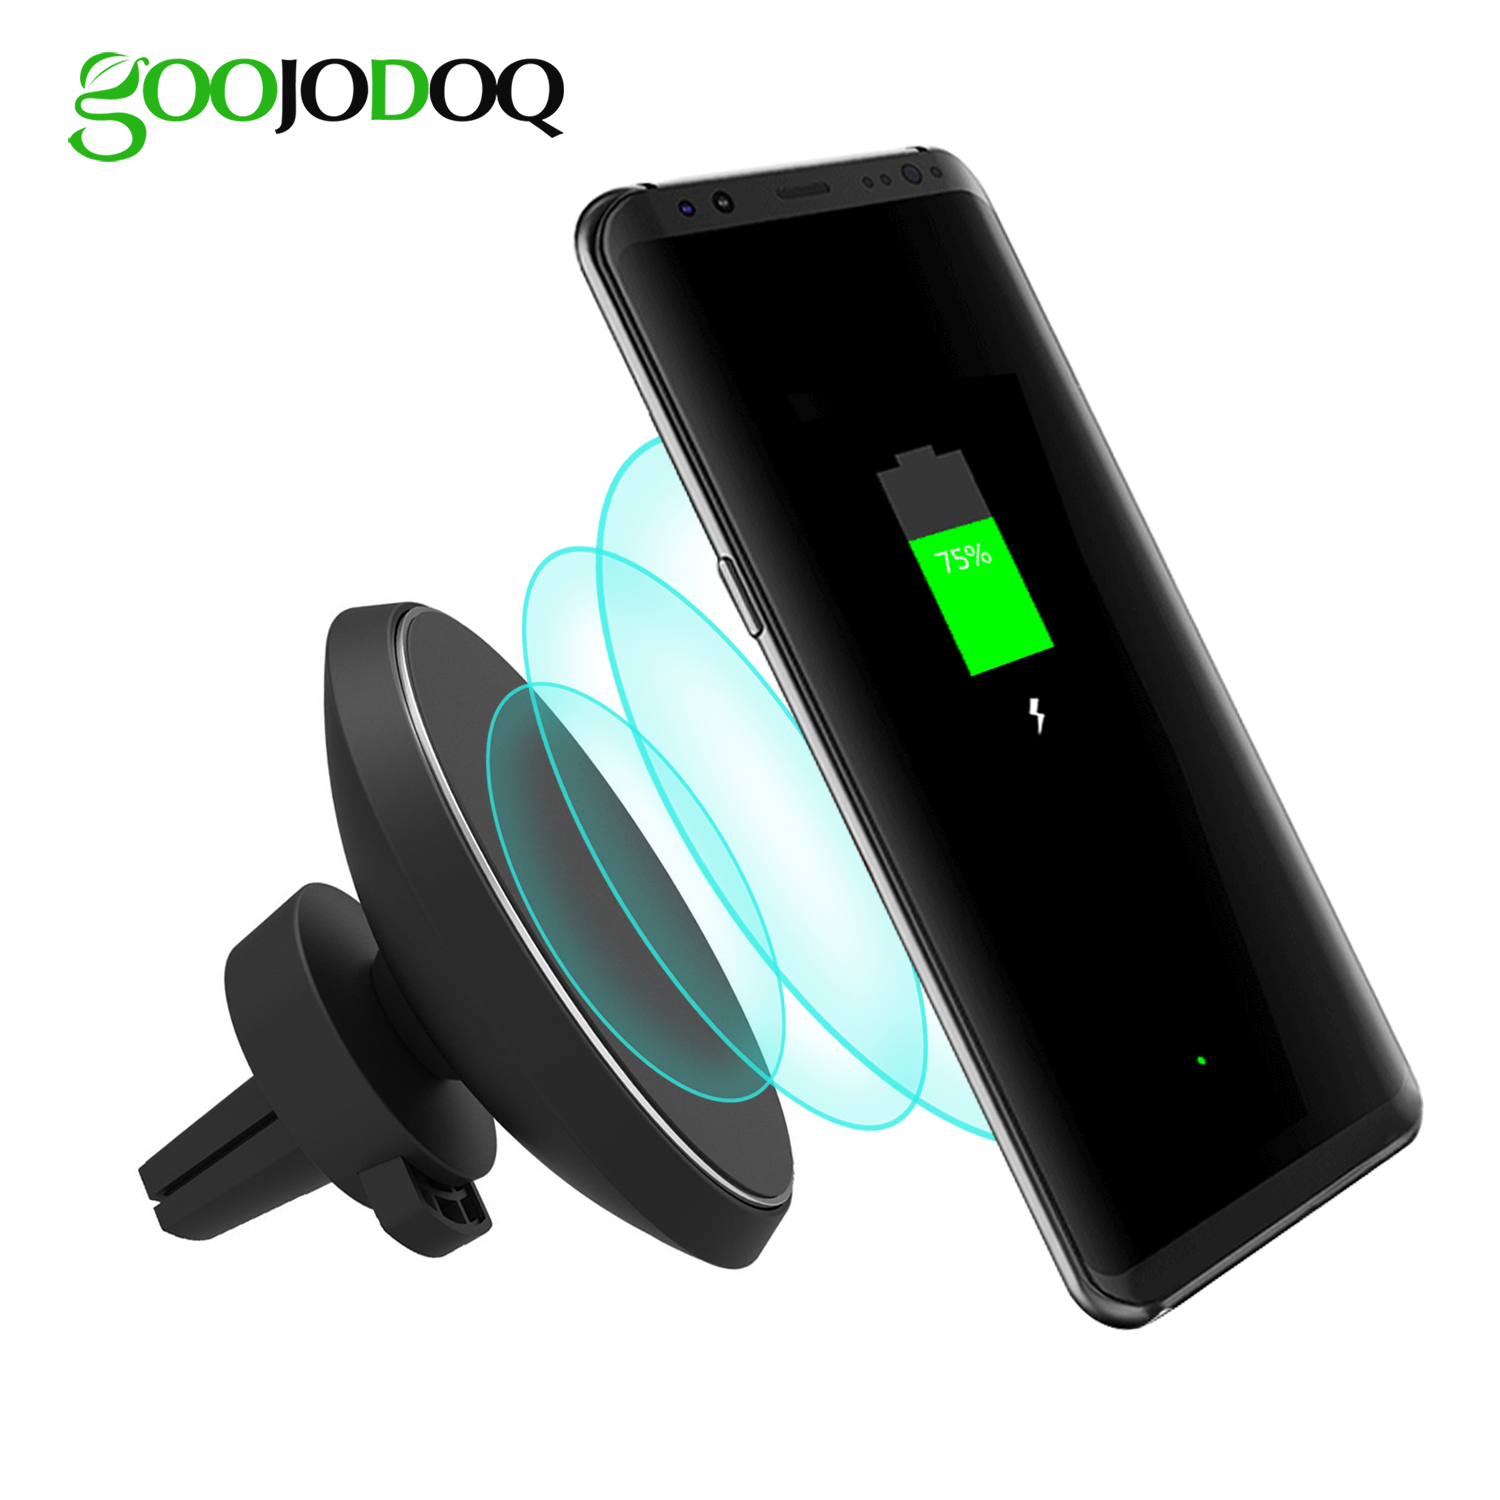 qi car wireless charger for iphone 7 plus 6 6s plus 6 6s. Black Bedroom Furniture Sets. Home Design Ideas